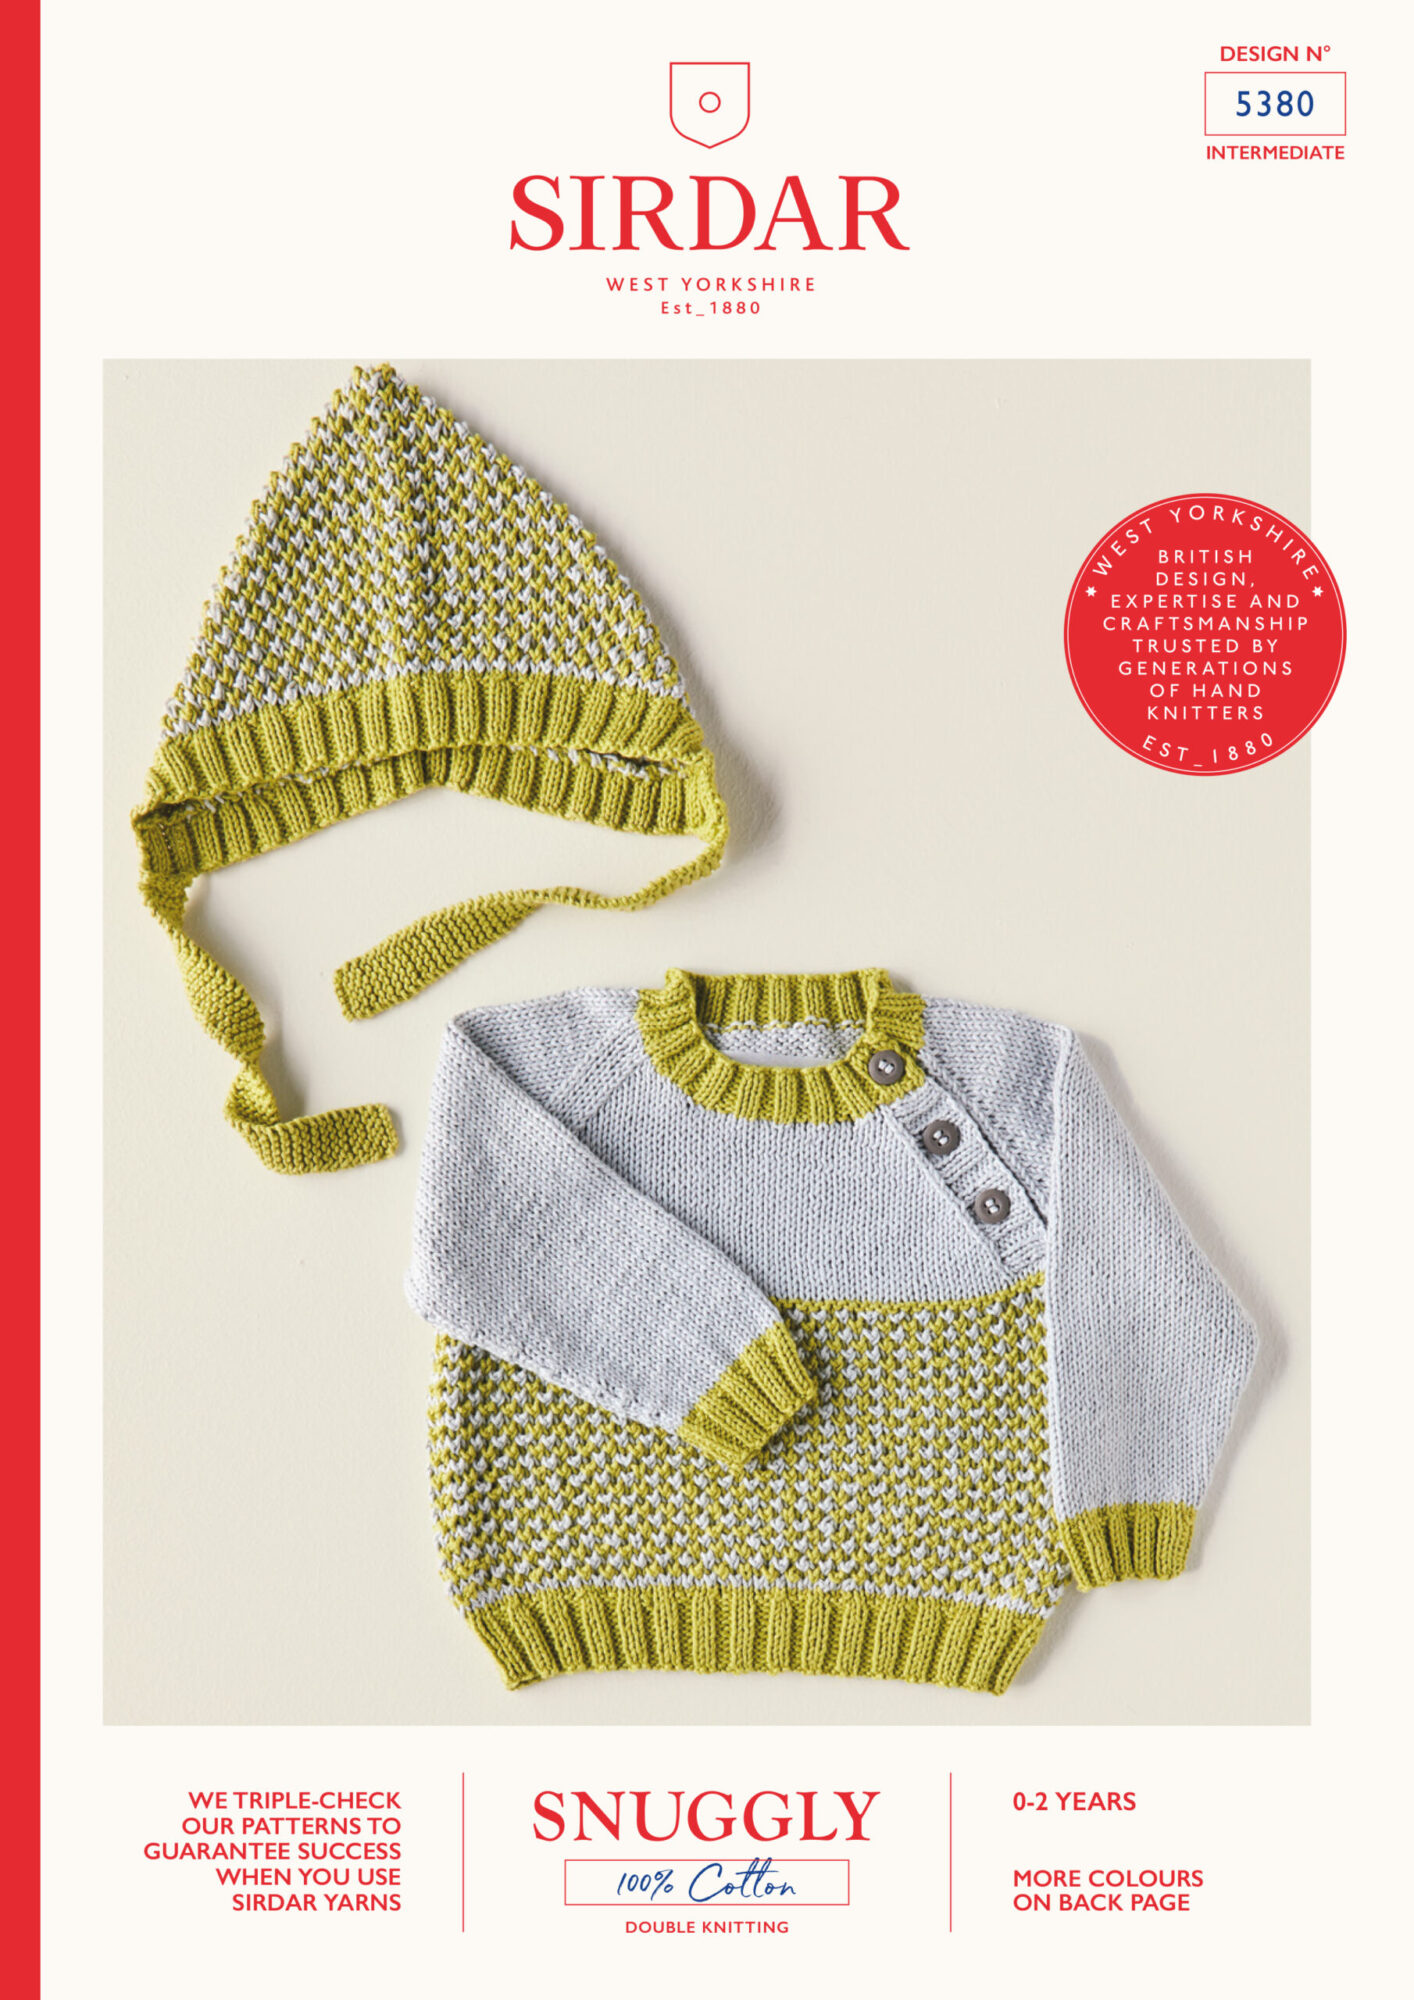 Sirdar Pattern Snuggly 100% Cotton DK 5380 (Download) product image